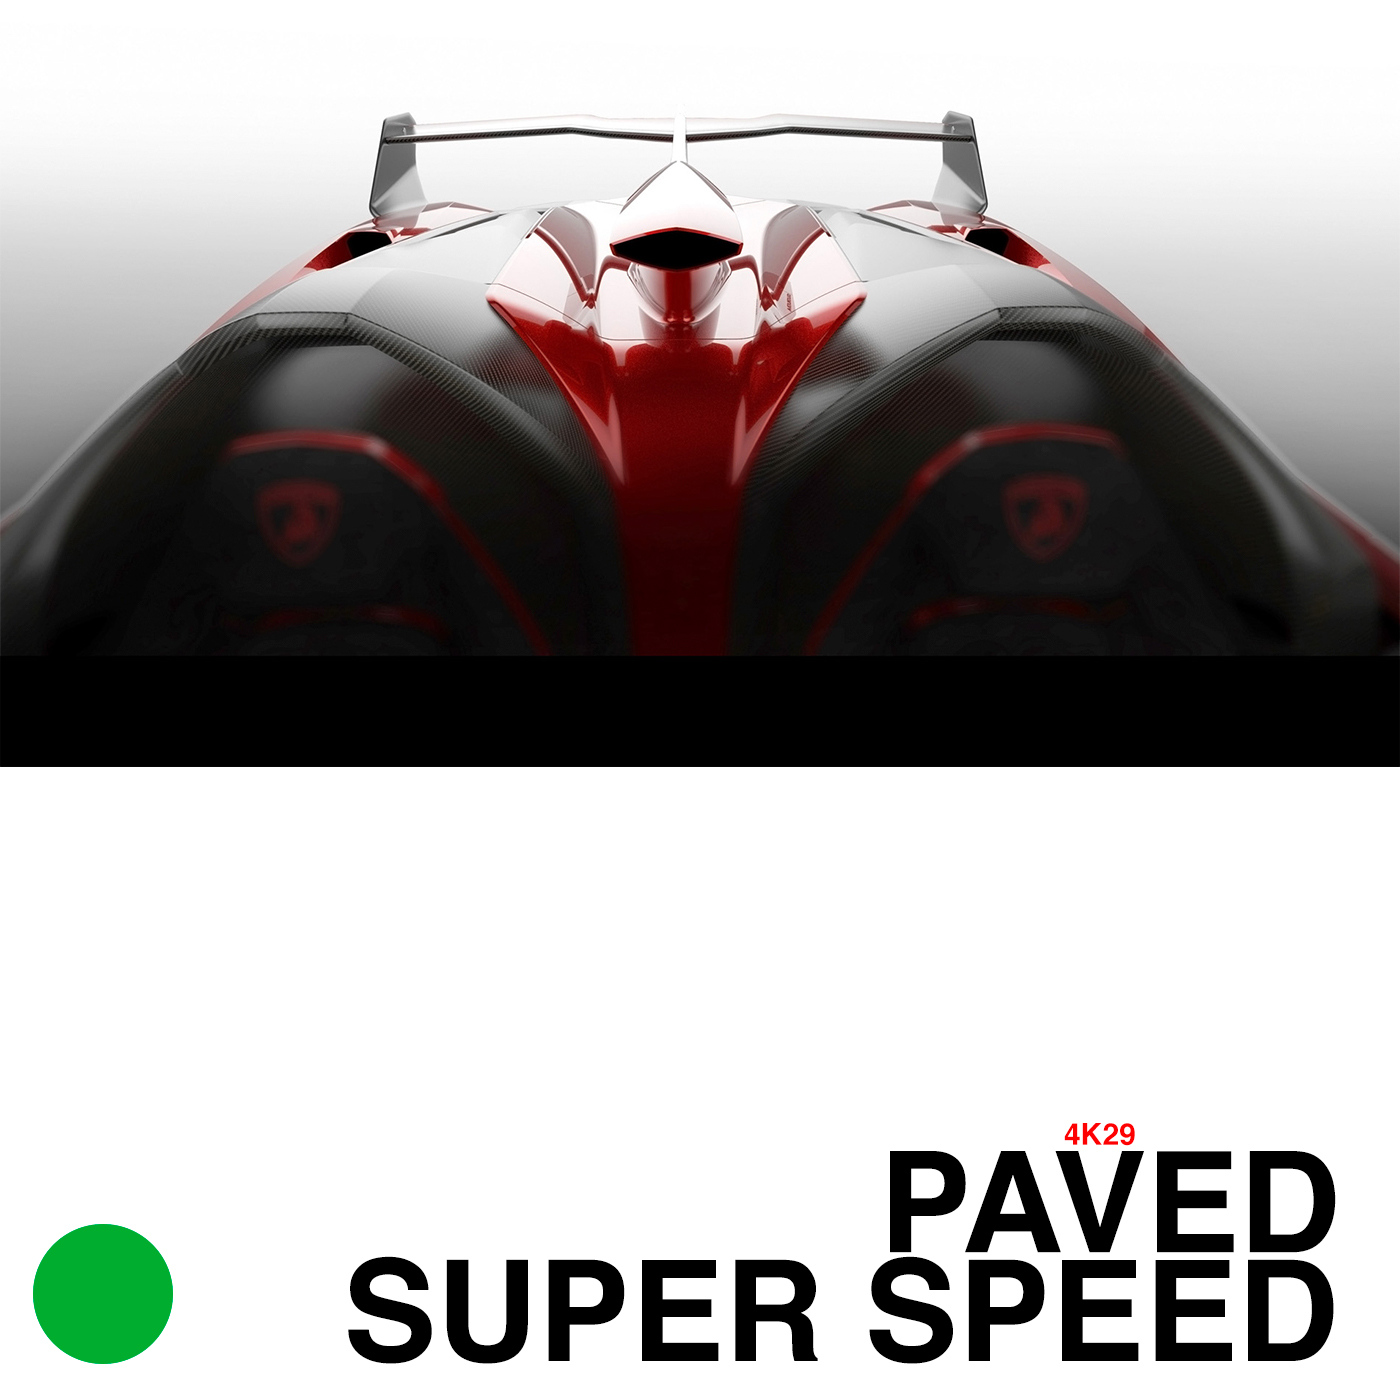 PAVED SUPER SPEED 4K29